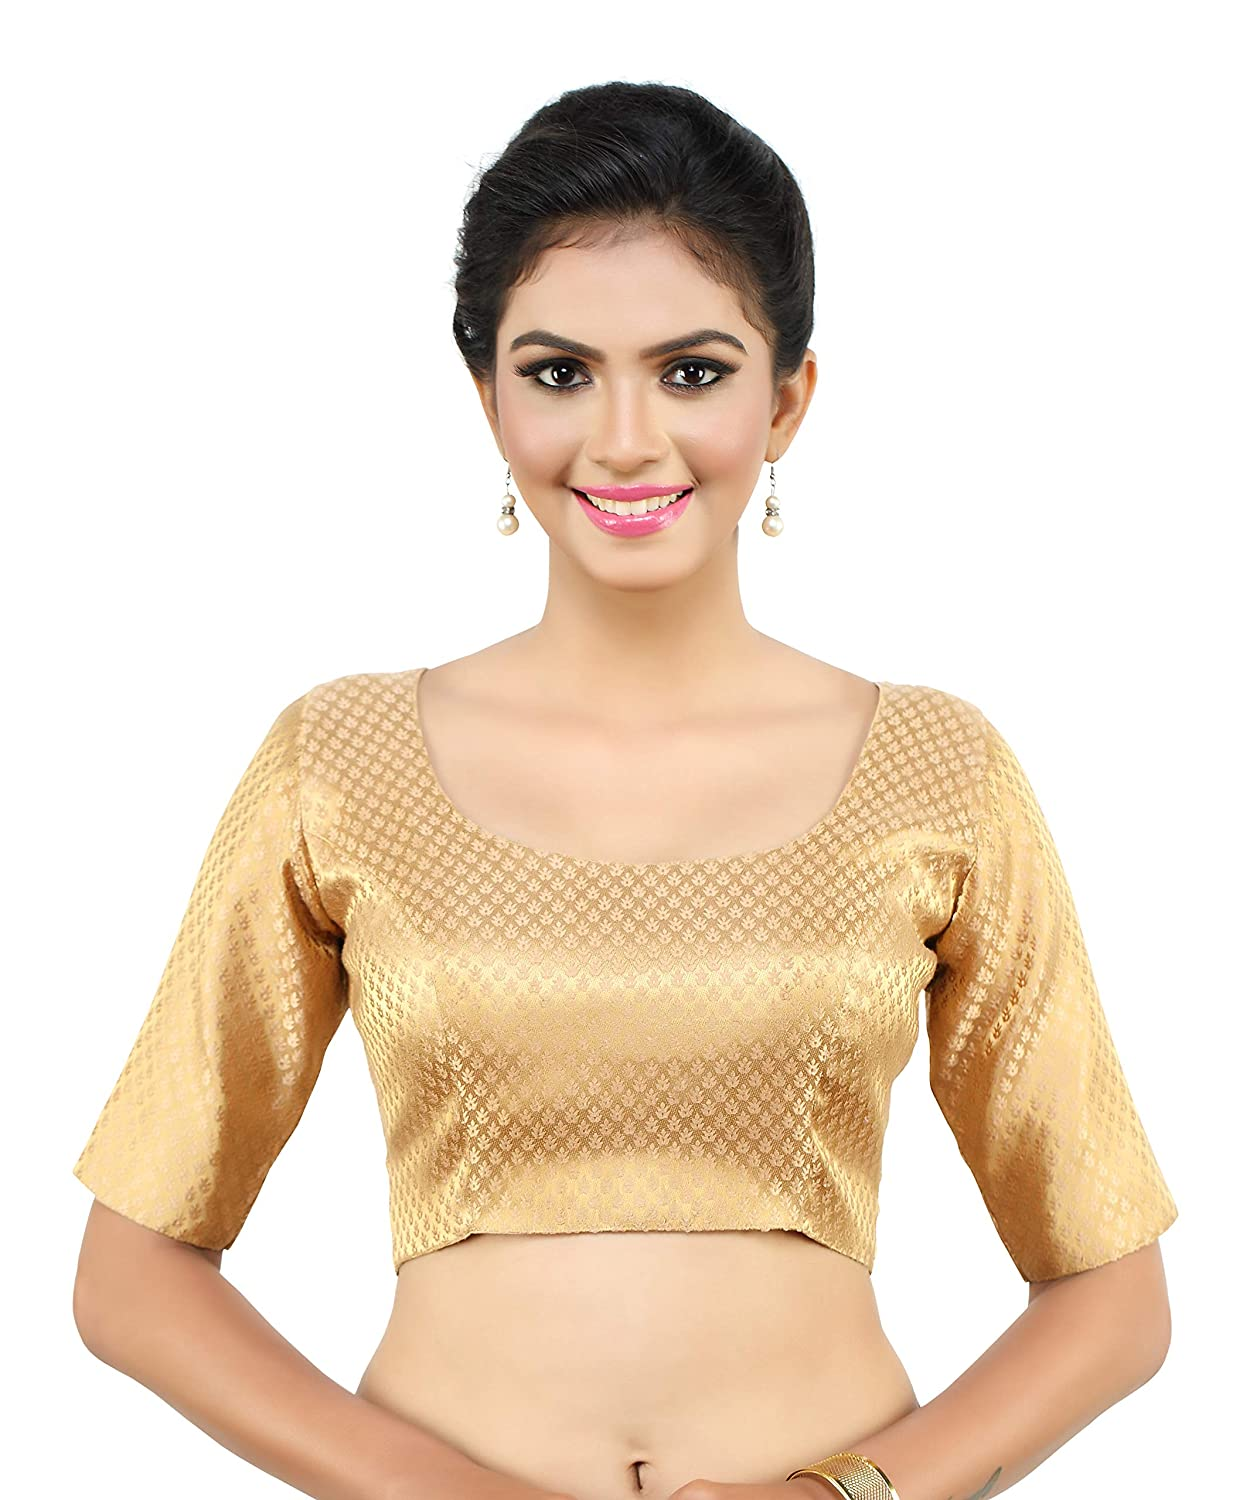 4b1feb40fc389d MADHU FASHION's Women's Golden Benaras Brocade Readymade Saree Blouse with  Round Neck and Elbow Length Sleeves: Amazon.in: Clothing & Accessories